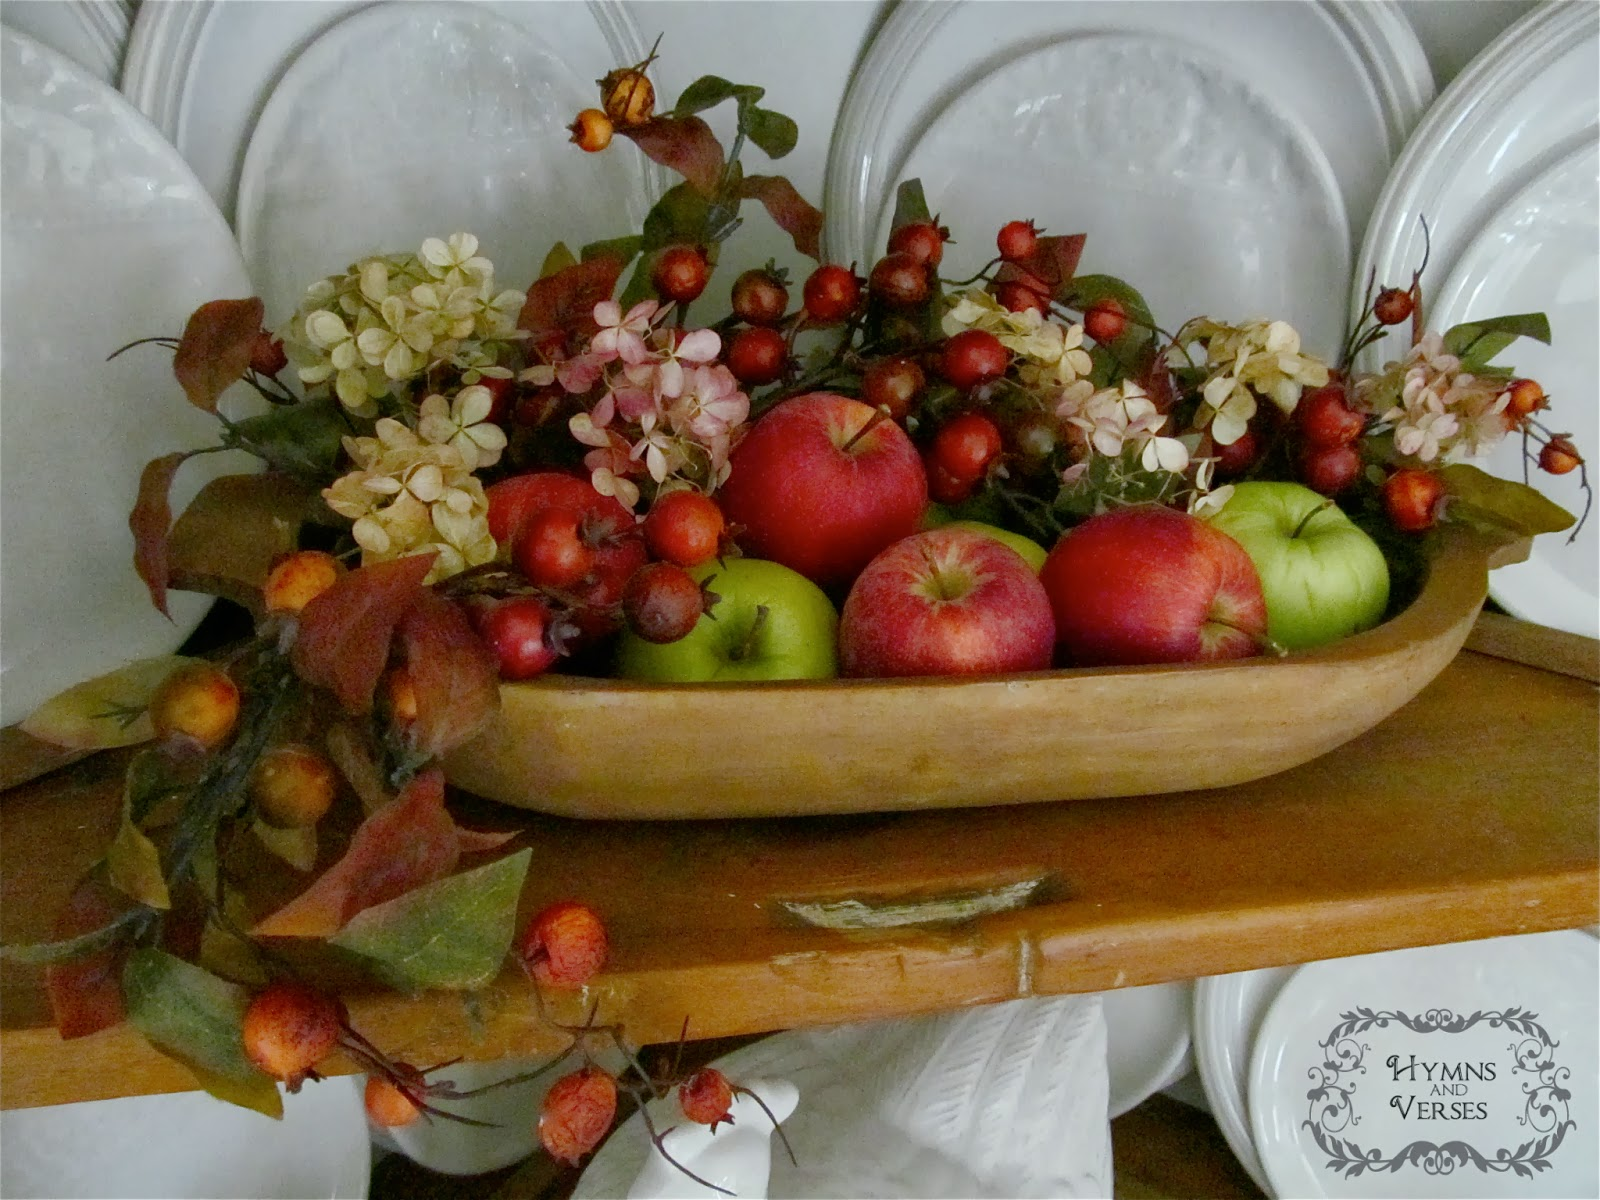 Hymns and verses decorating with apples for fall for Apple decoration